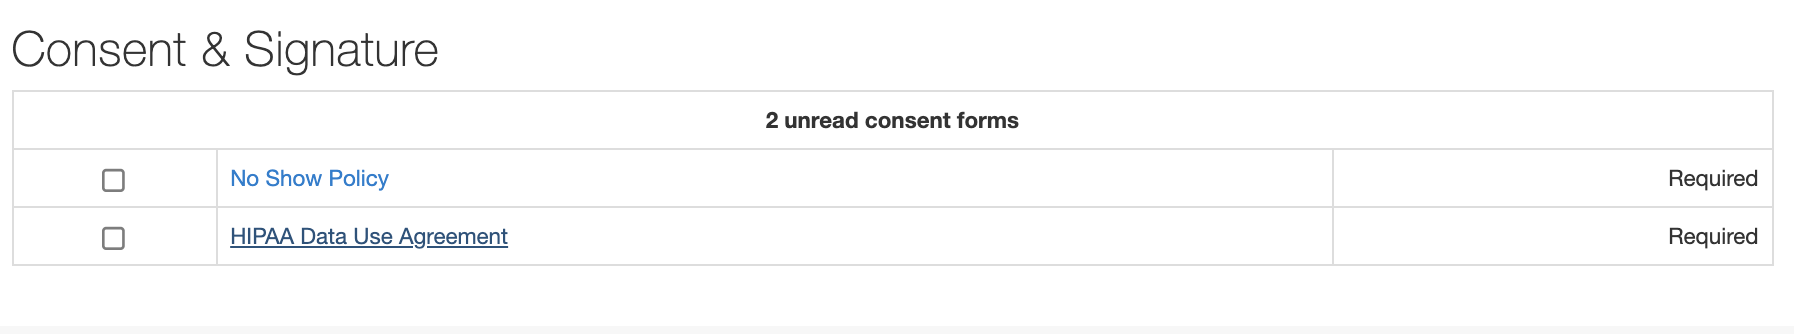 Consent_Forms.png